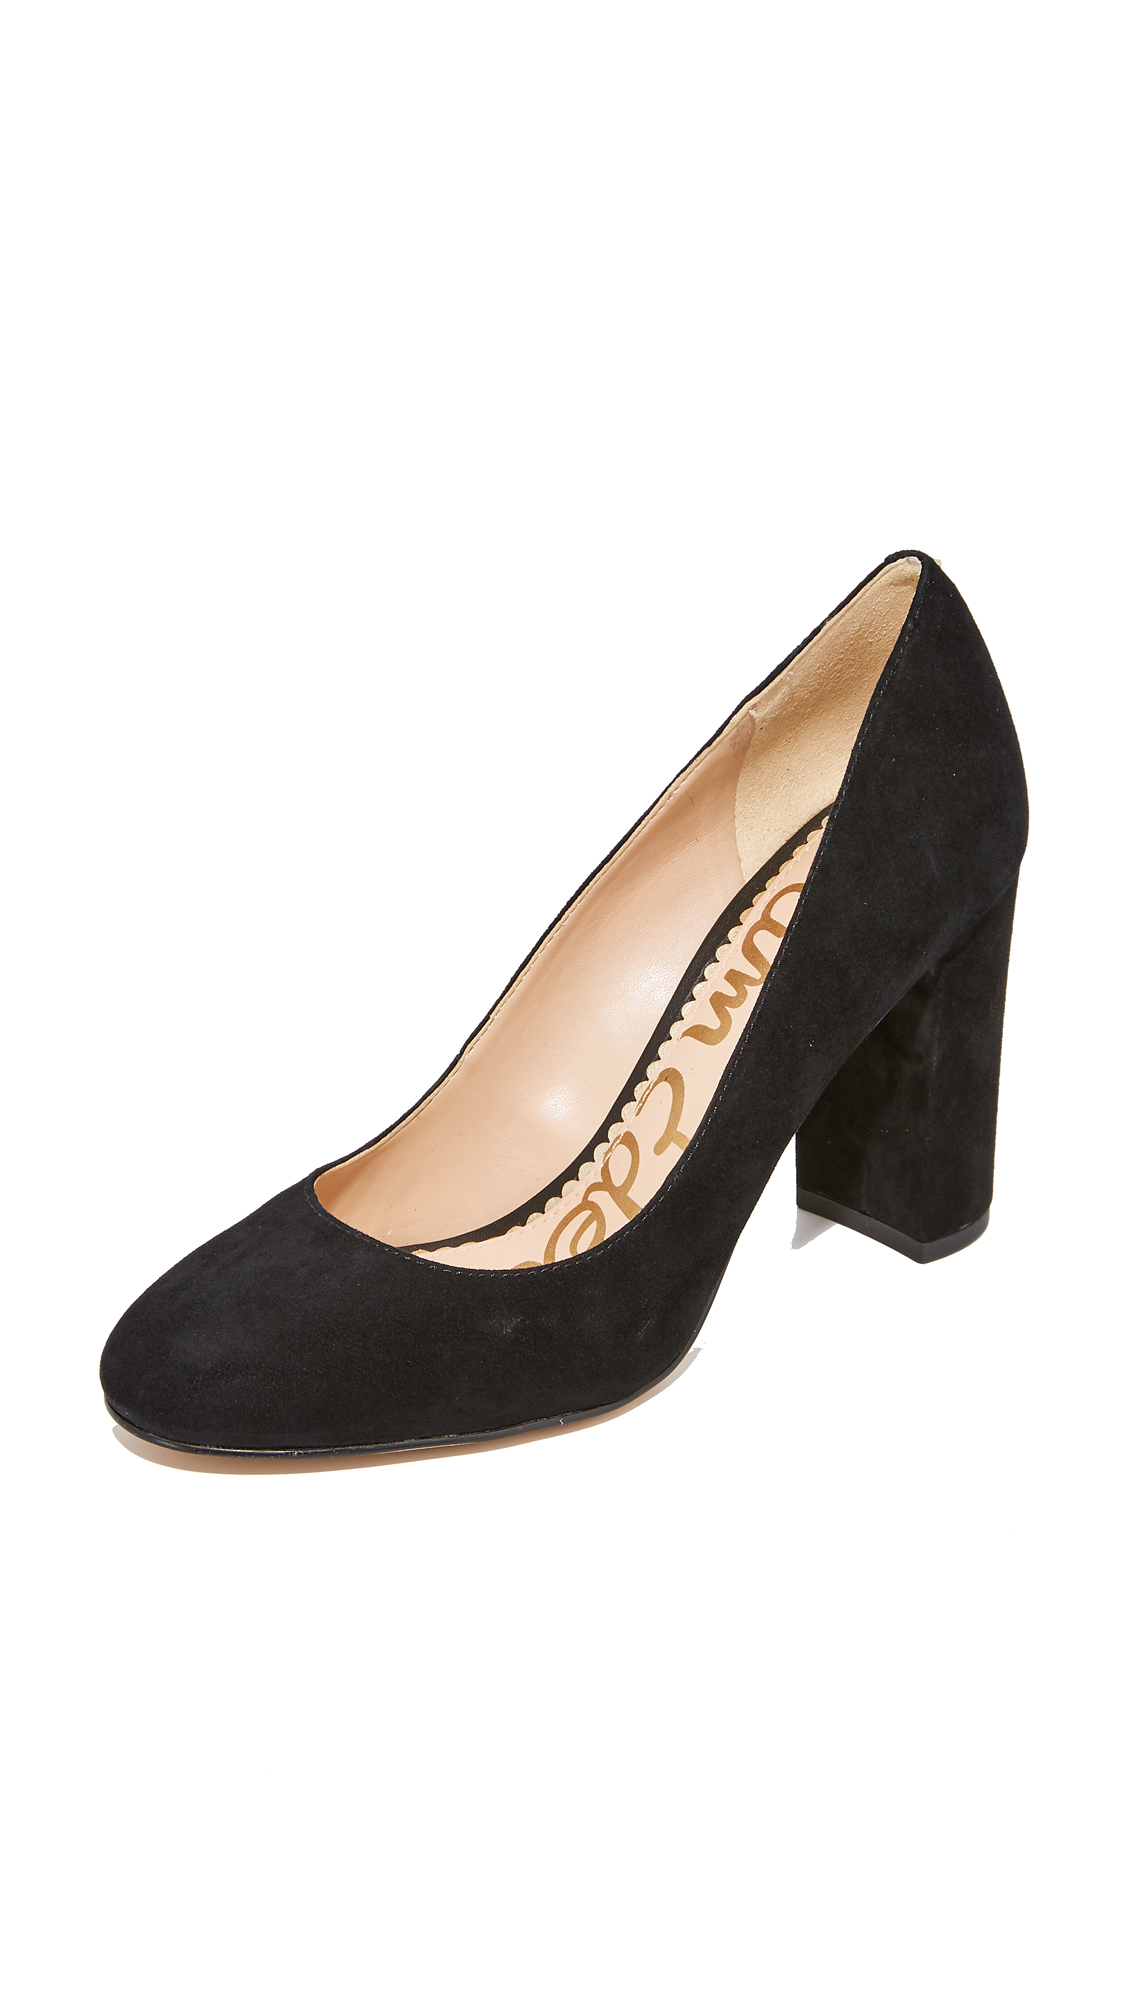 Sam Edelman Stillson Pumps